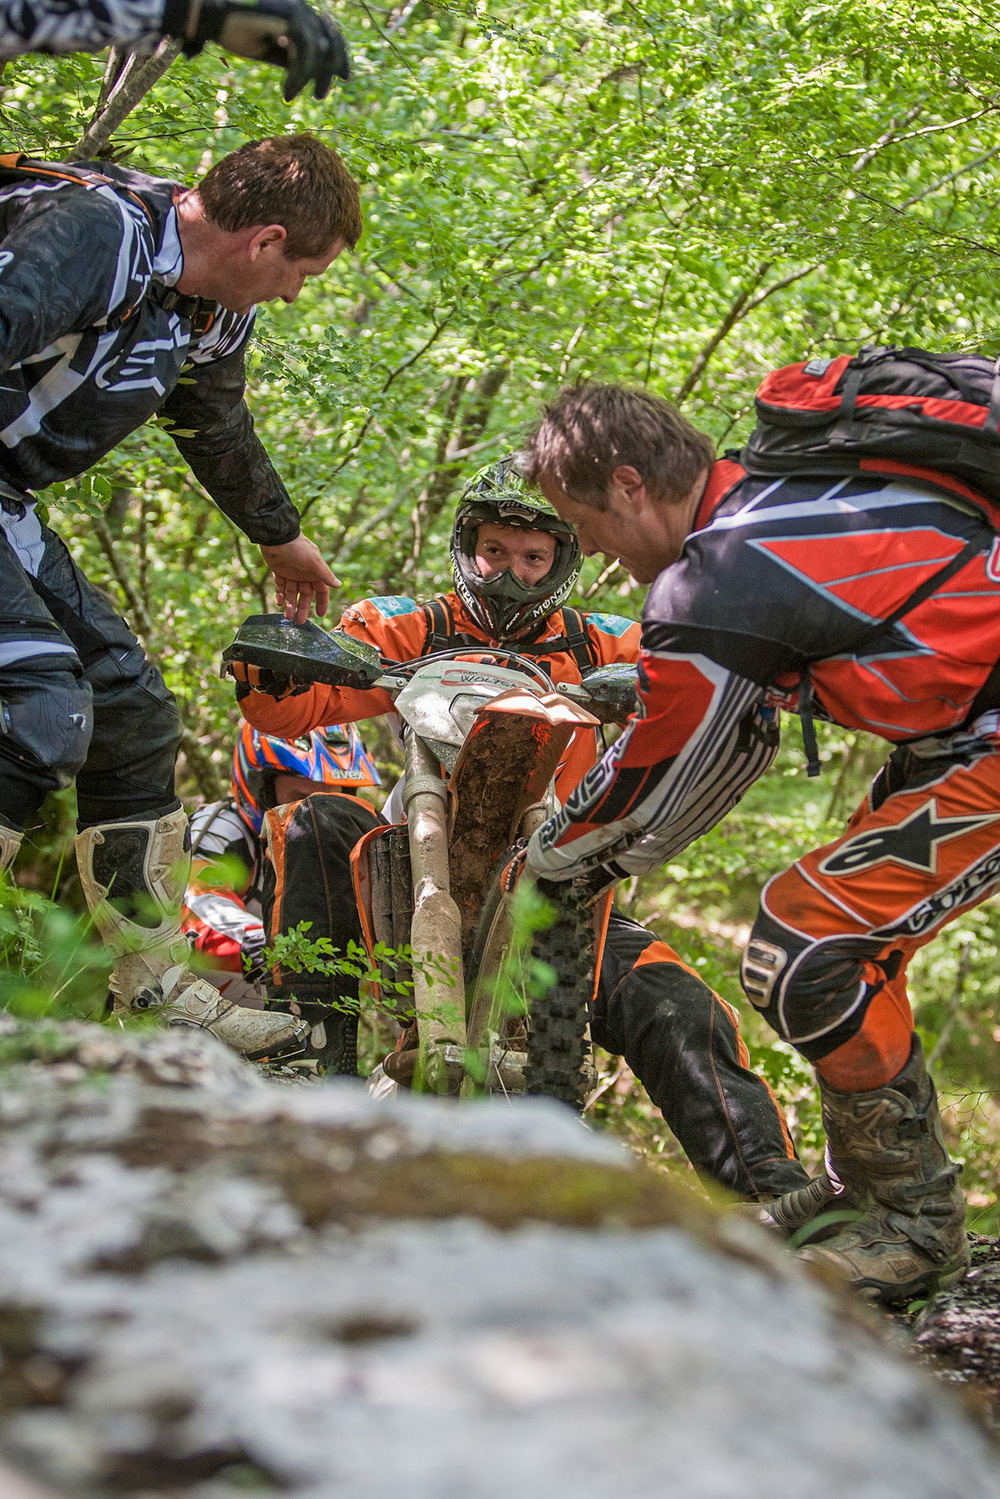 ktm adventure tours kroatien-81.jpg